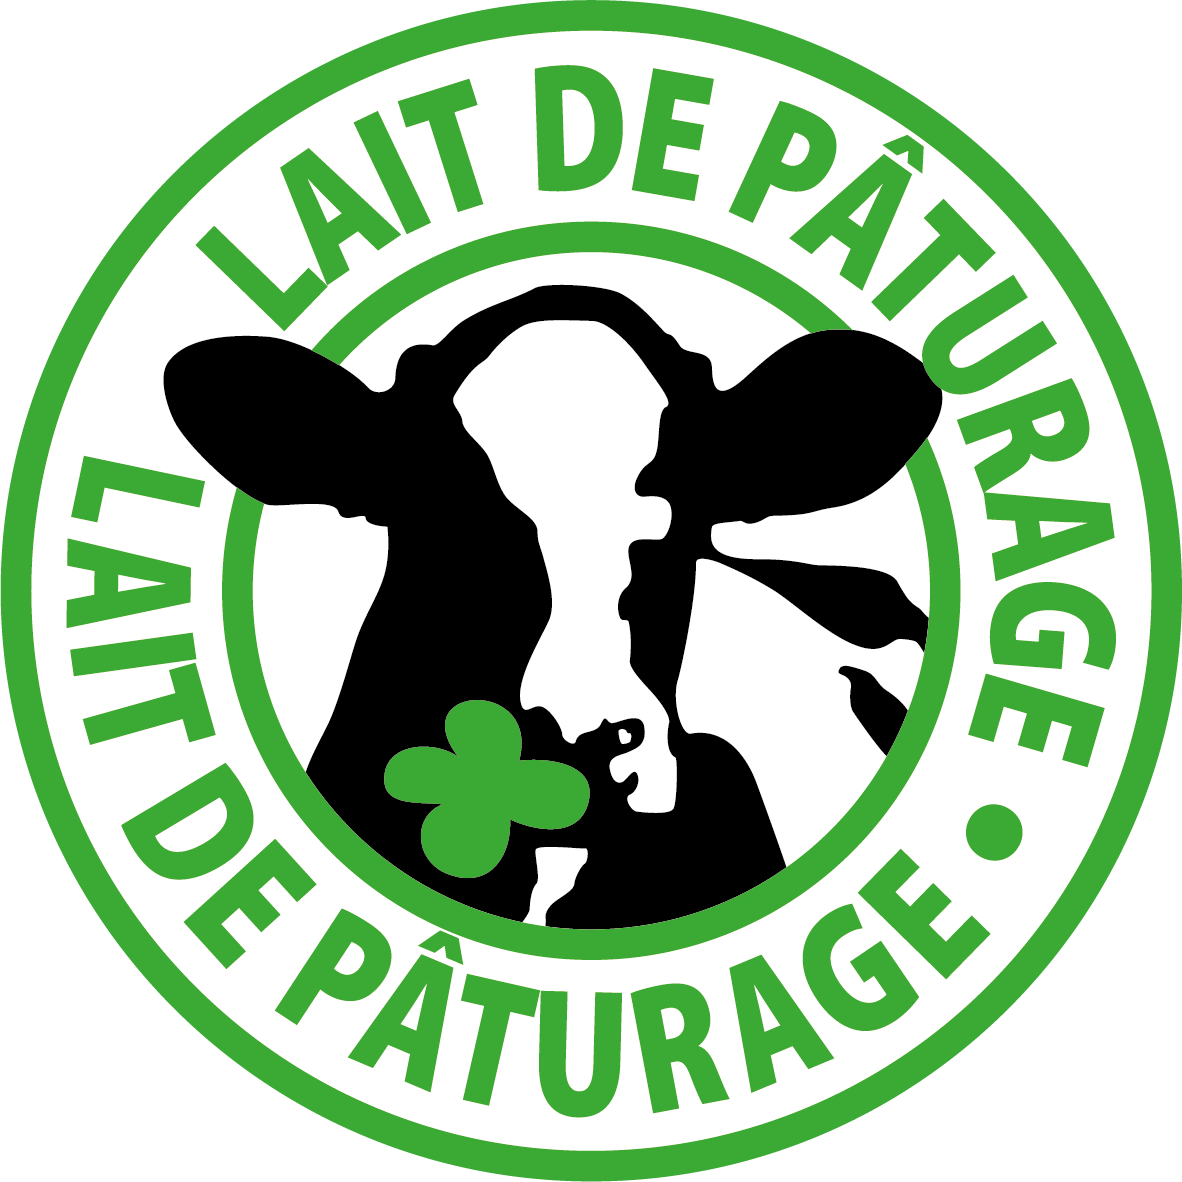 FR Lait de Paturage